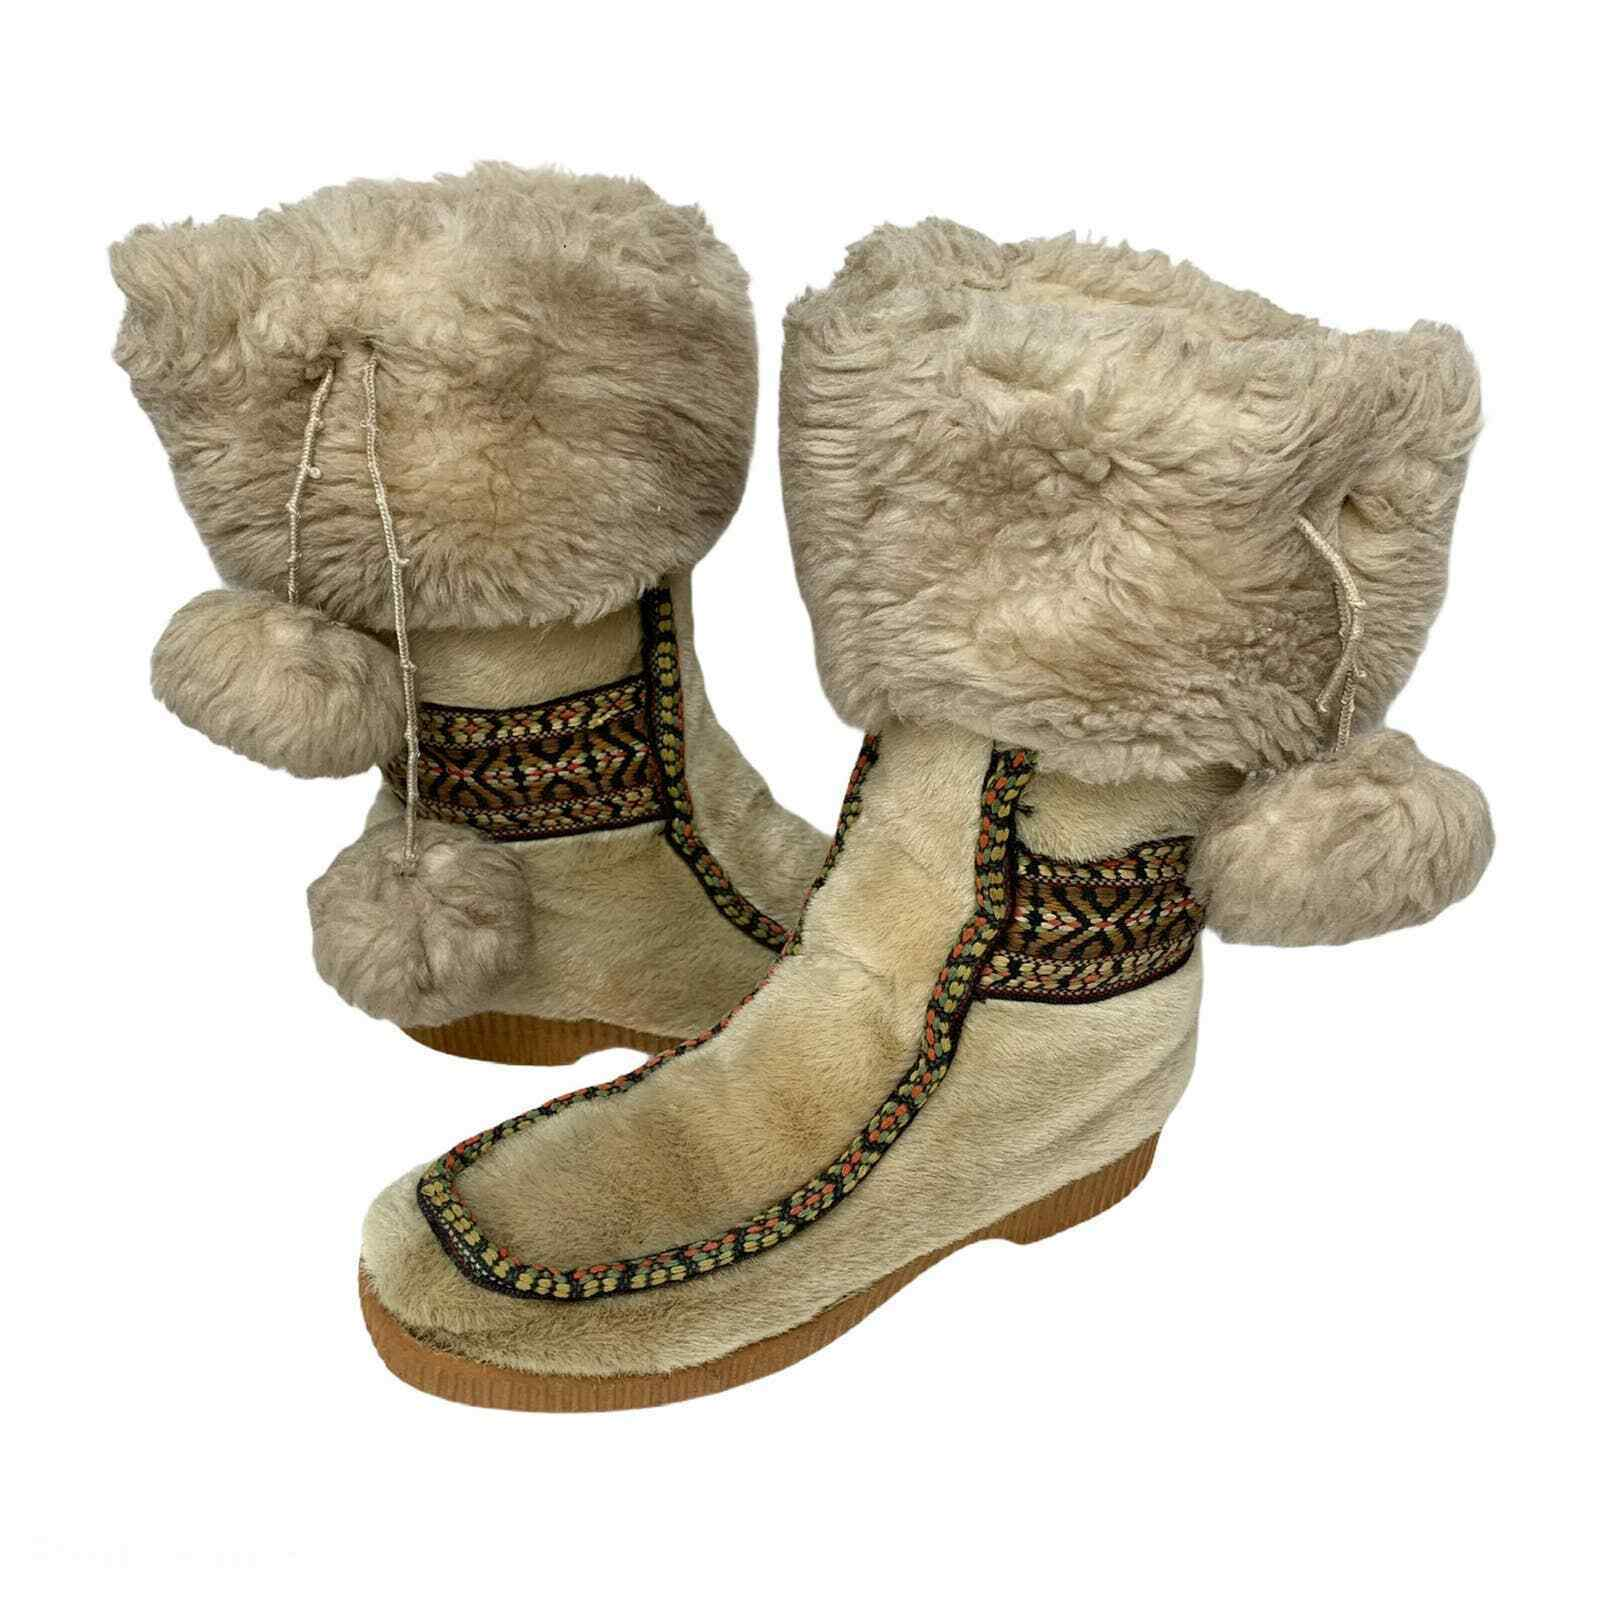 vintage 60s YODELERS faux fur WINTER BOOTS 7 lace up ski boots suede leather cozy ankle boots boho hippie shearling booties 60s shoes folk